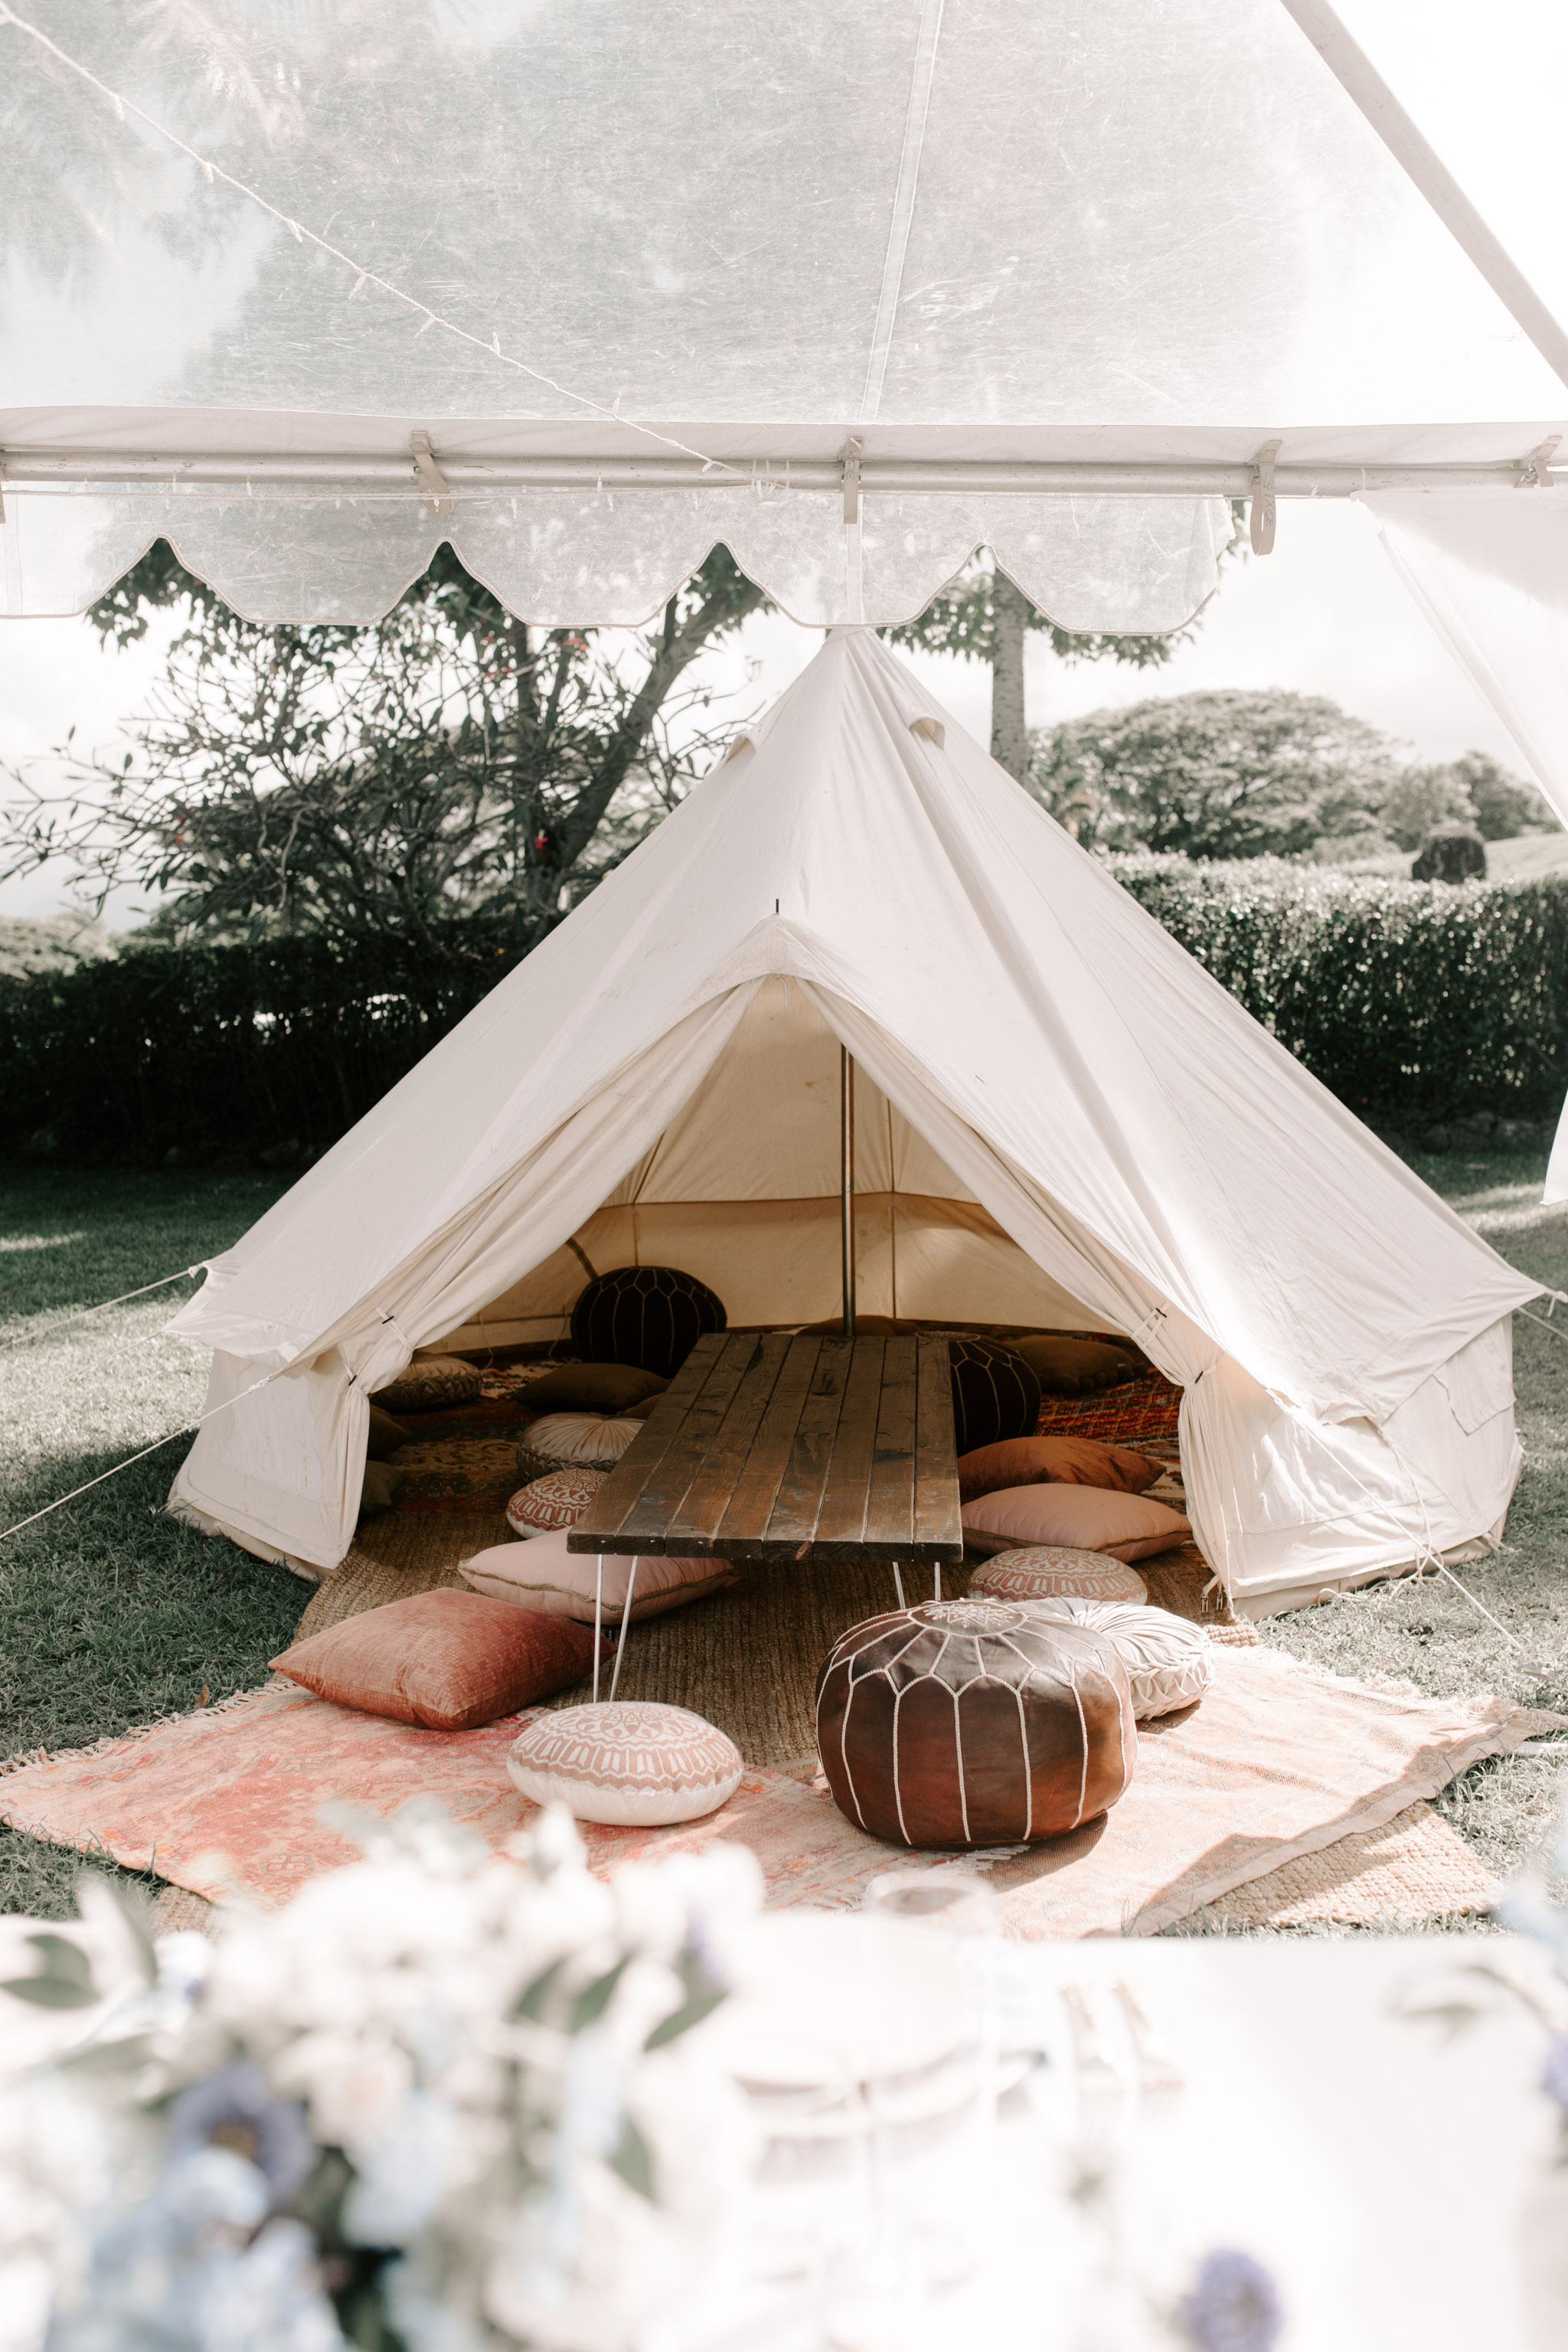 Aloha Artisans Teepee Rental Hawaii. Photography by Hawaii Wedding Photographer Desiree Leilani